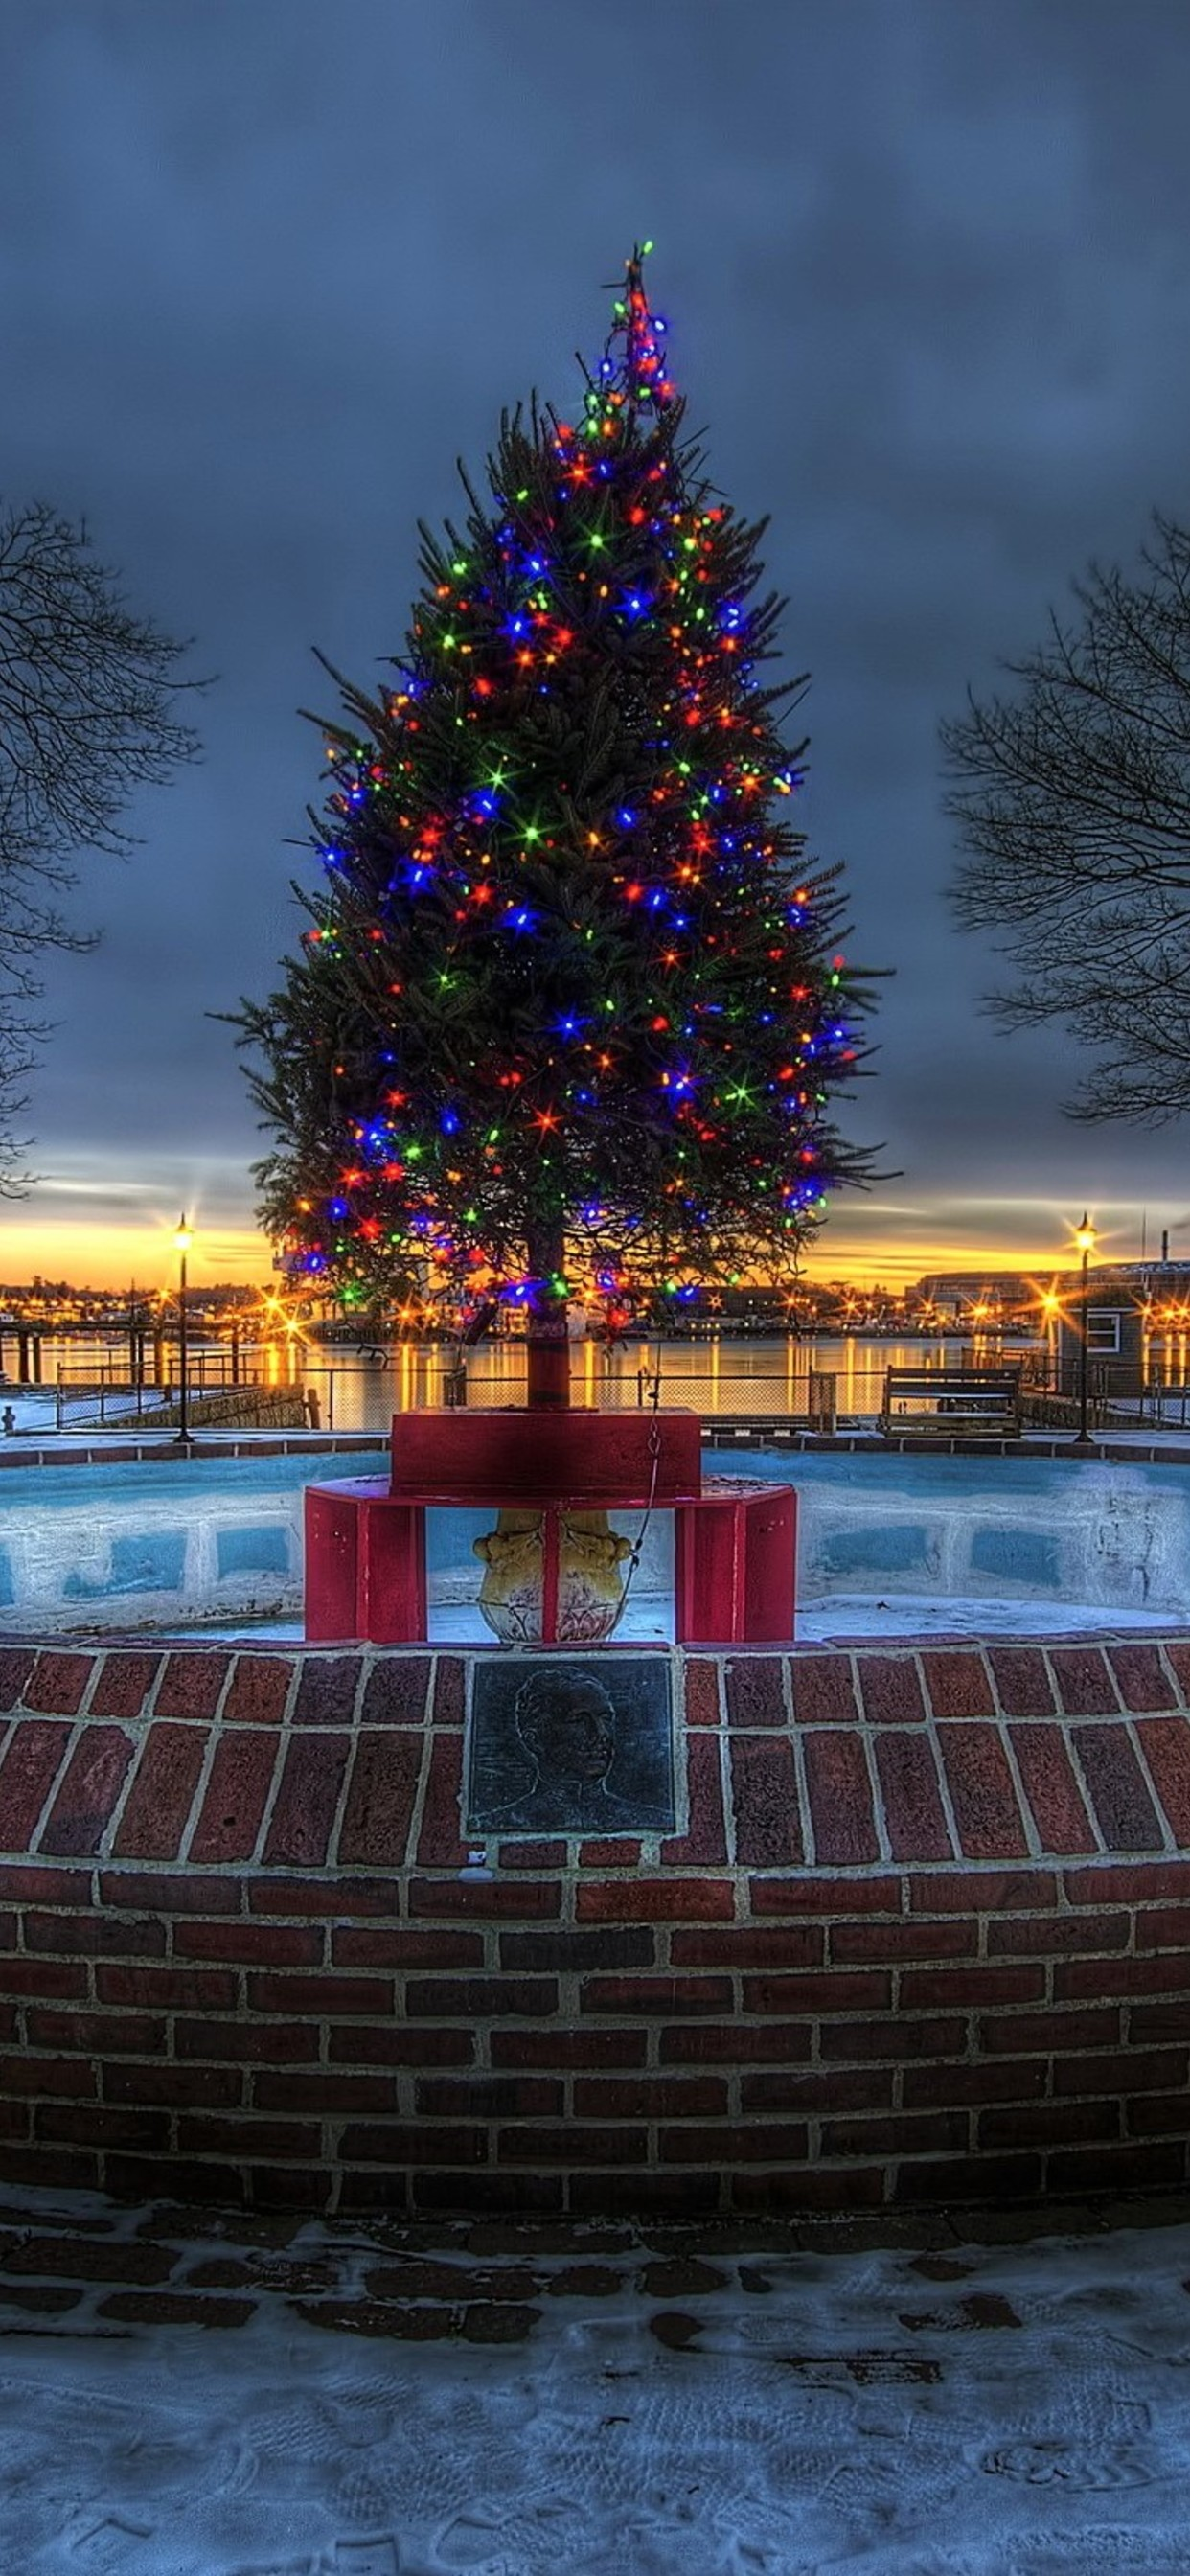 Lighted Christmas Tree - Huawei Christmas View , HD Wallpaper & Backgrounds